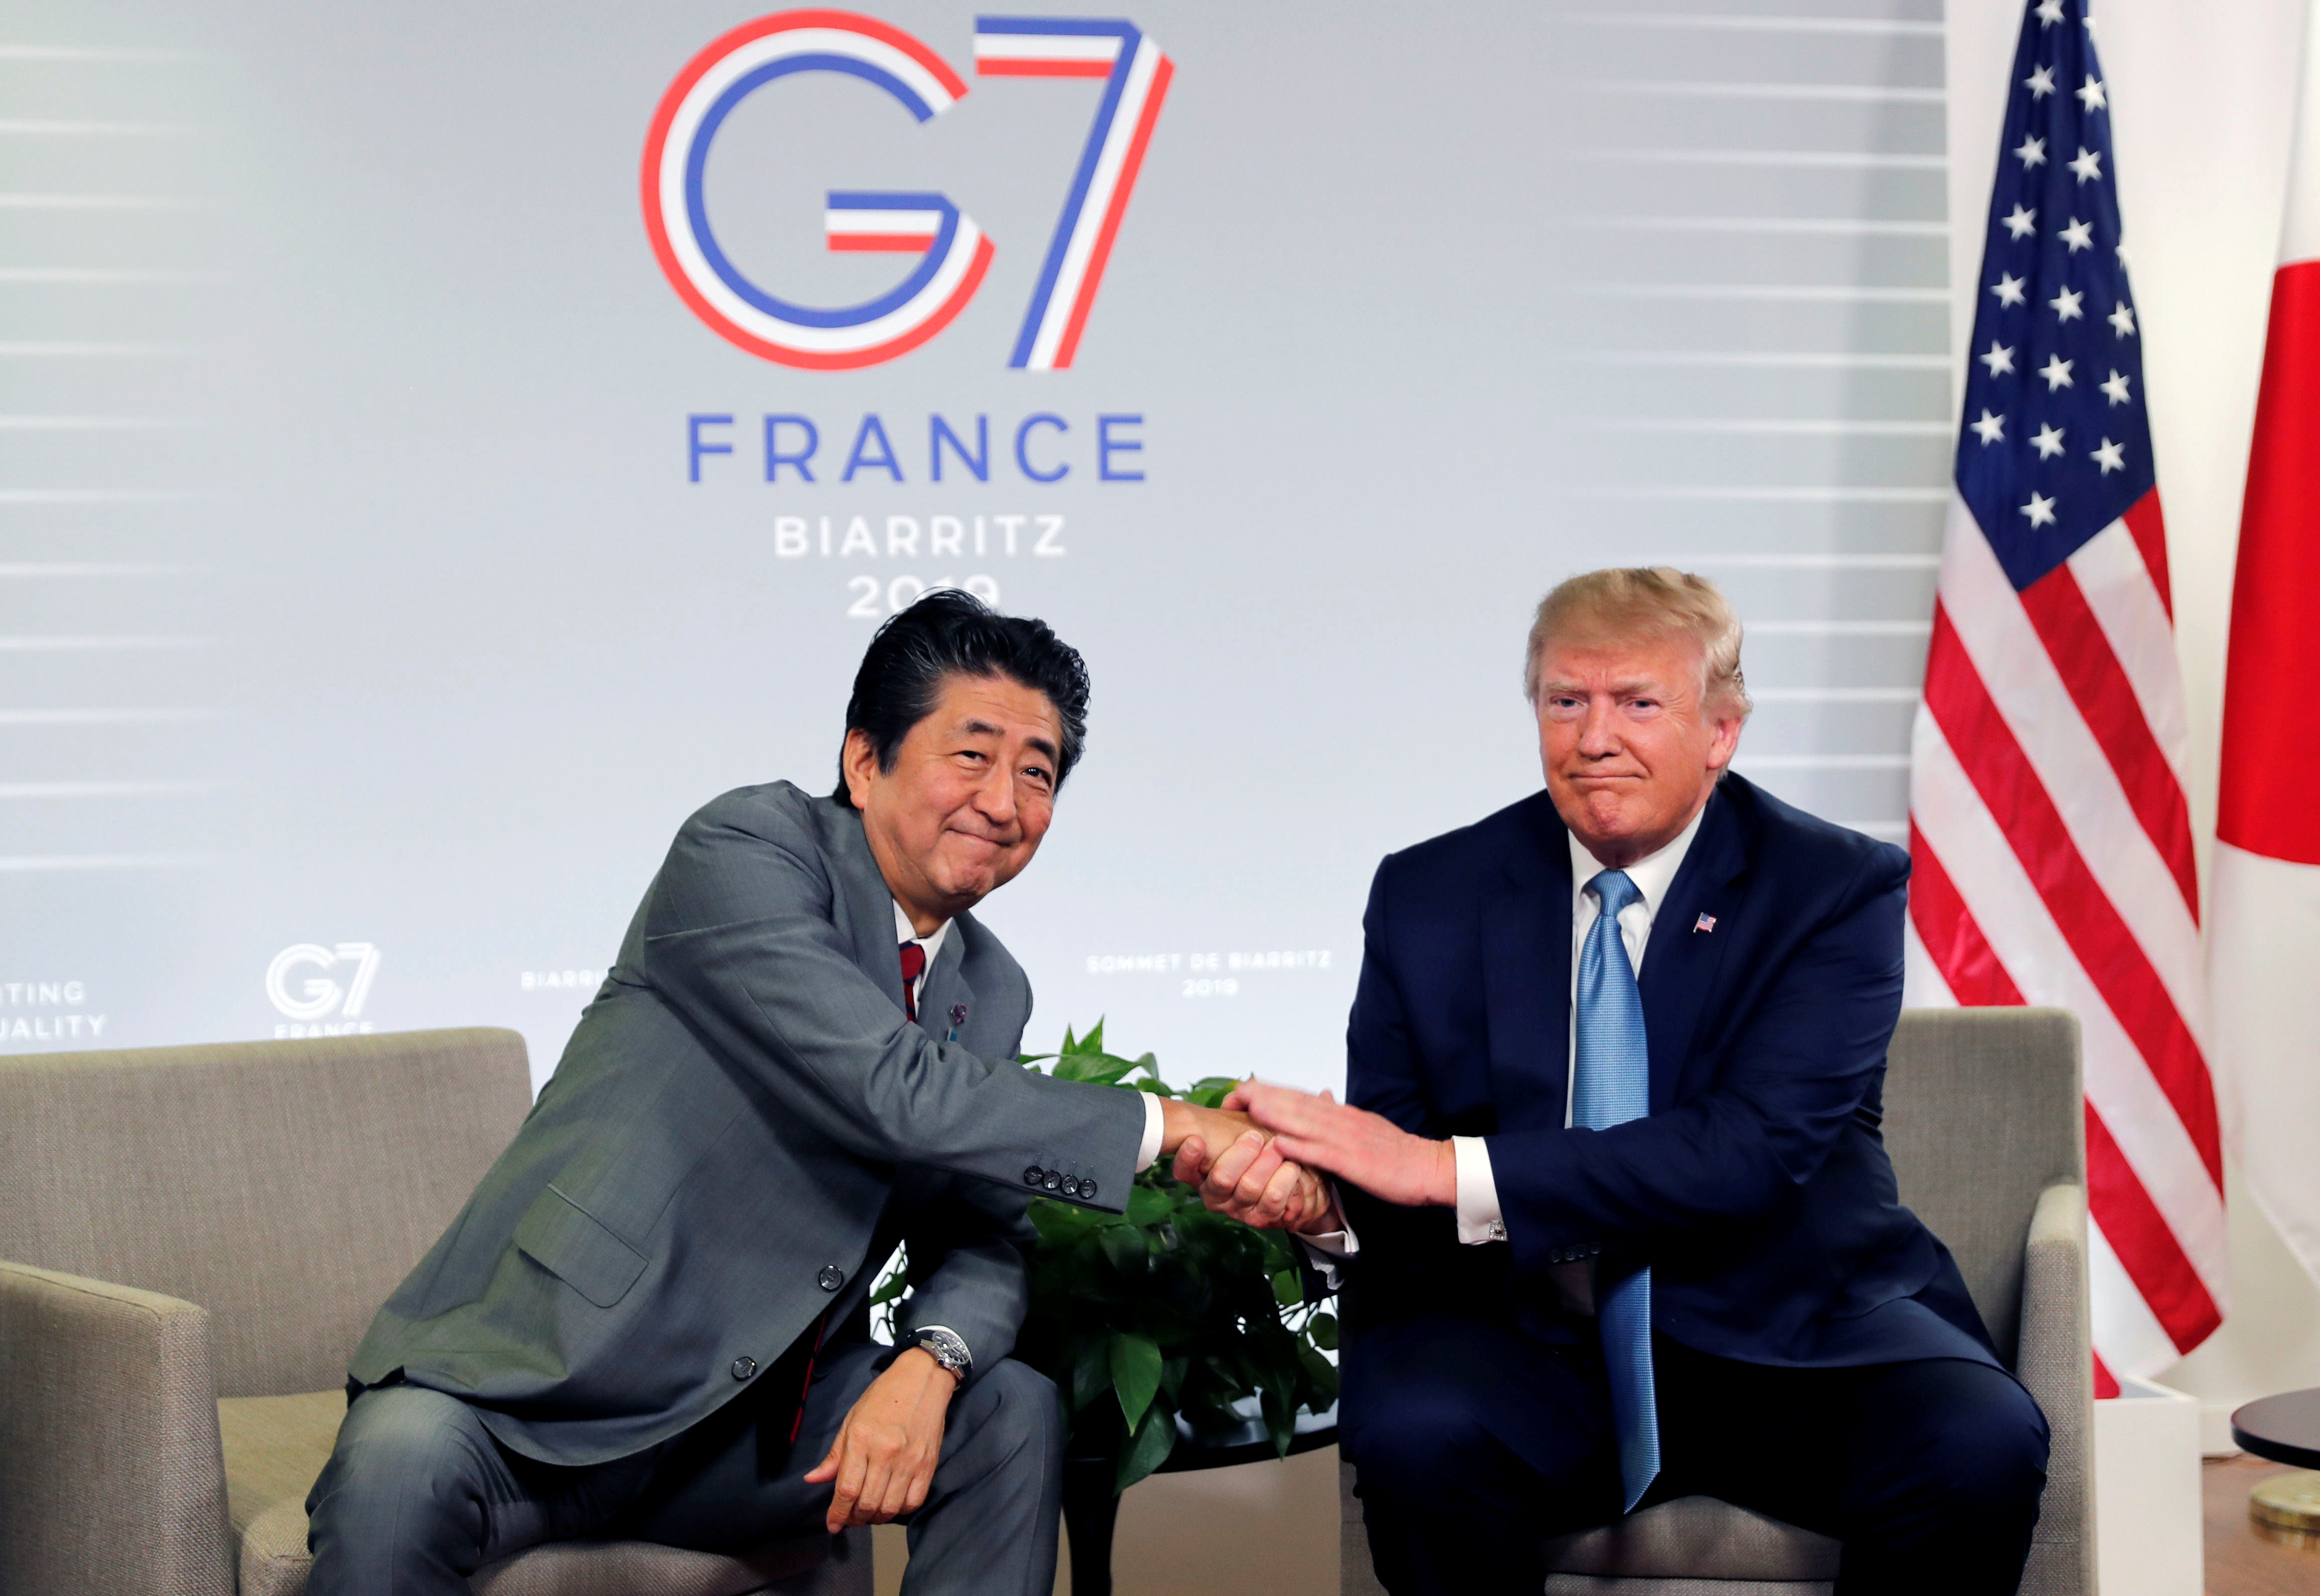 Trump shakes hands with Abe at G7